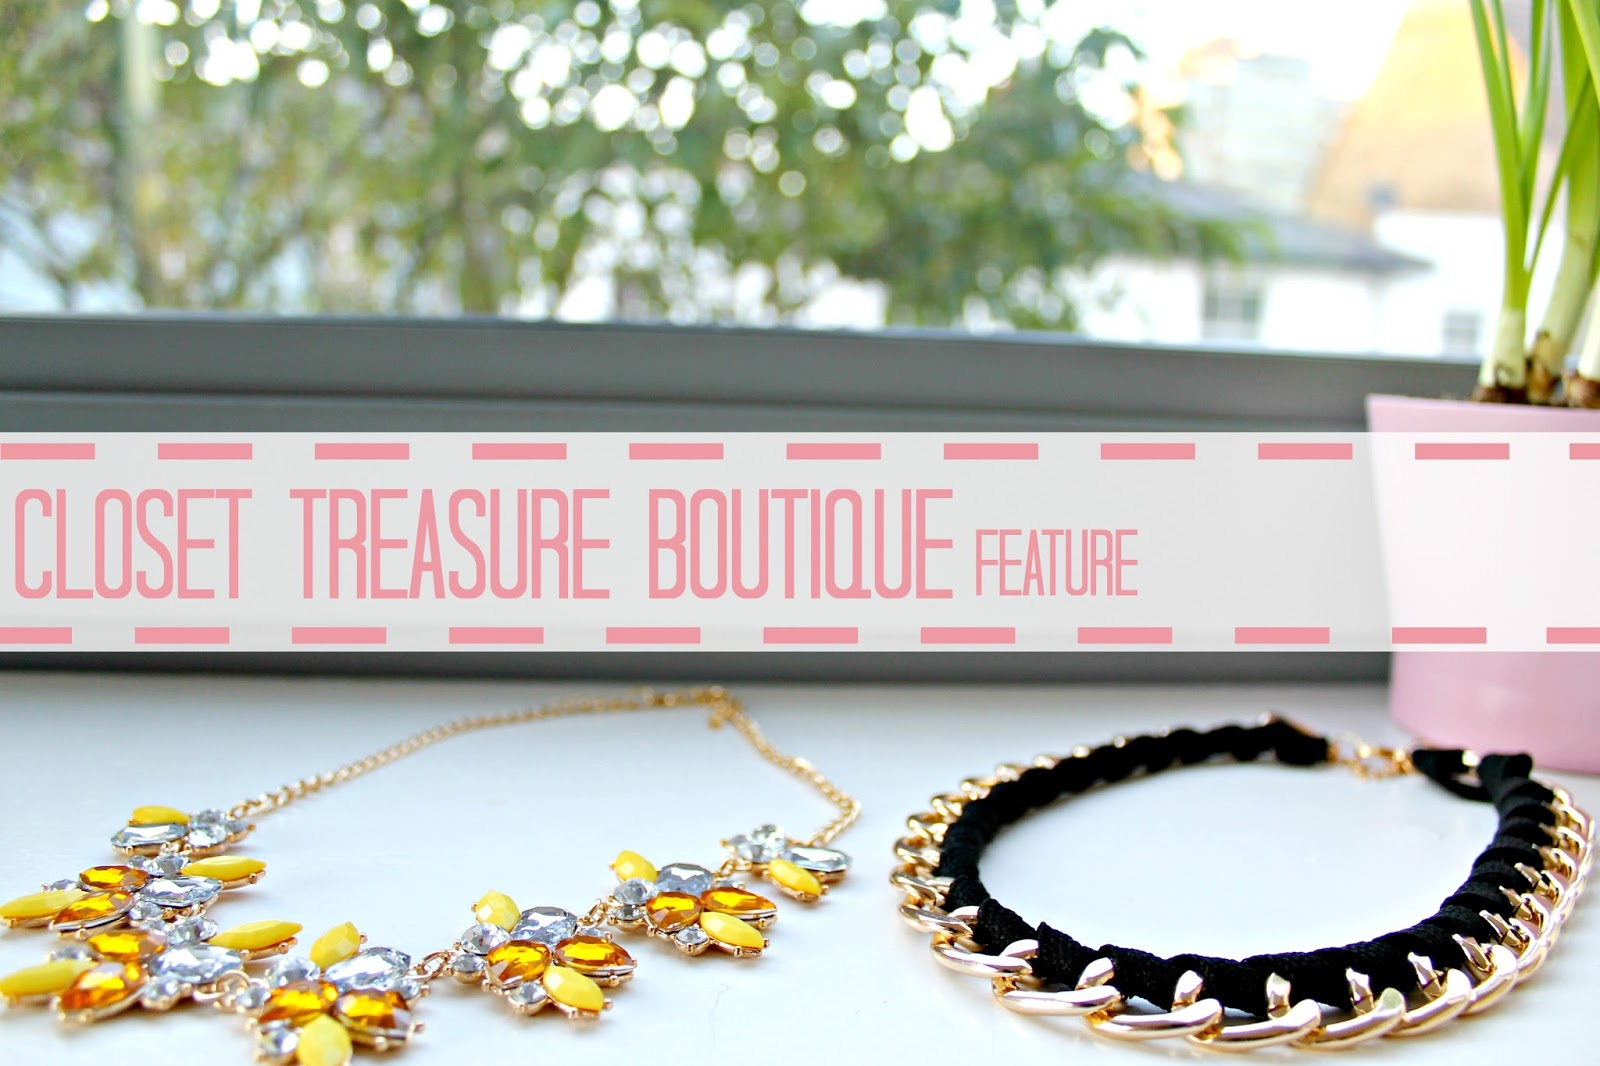 A feature about closet treasure boutique